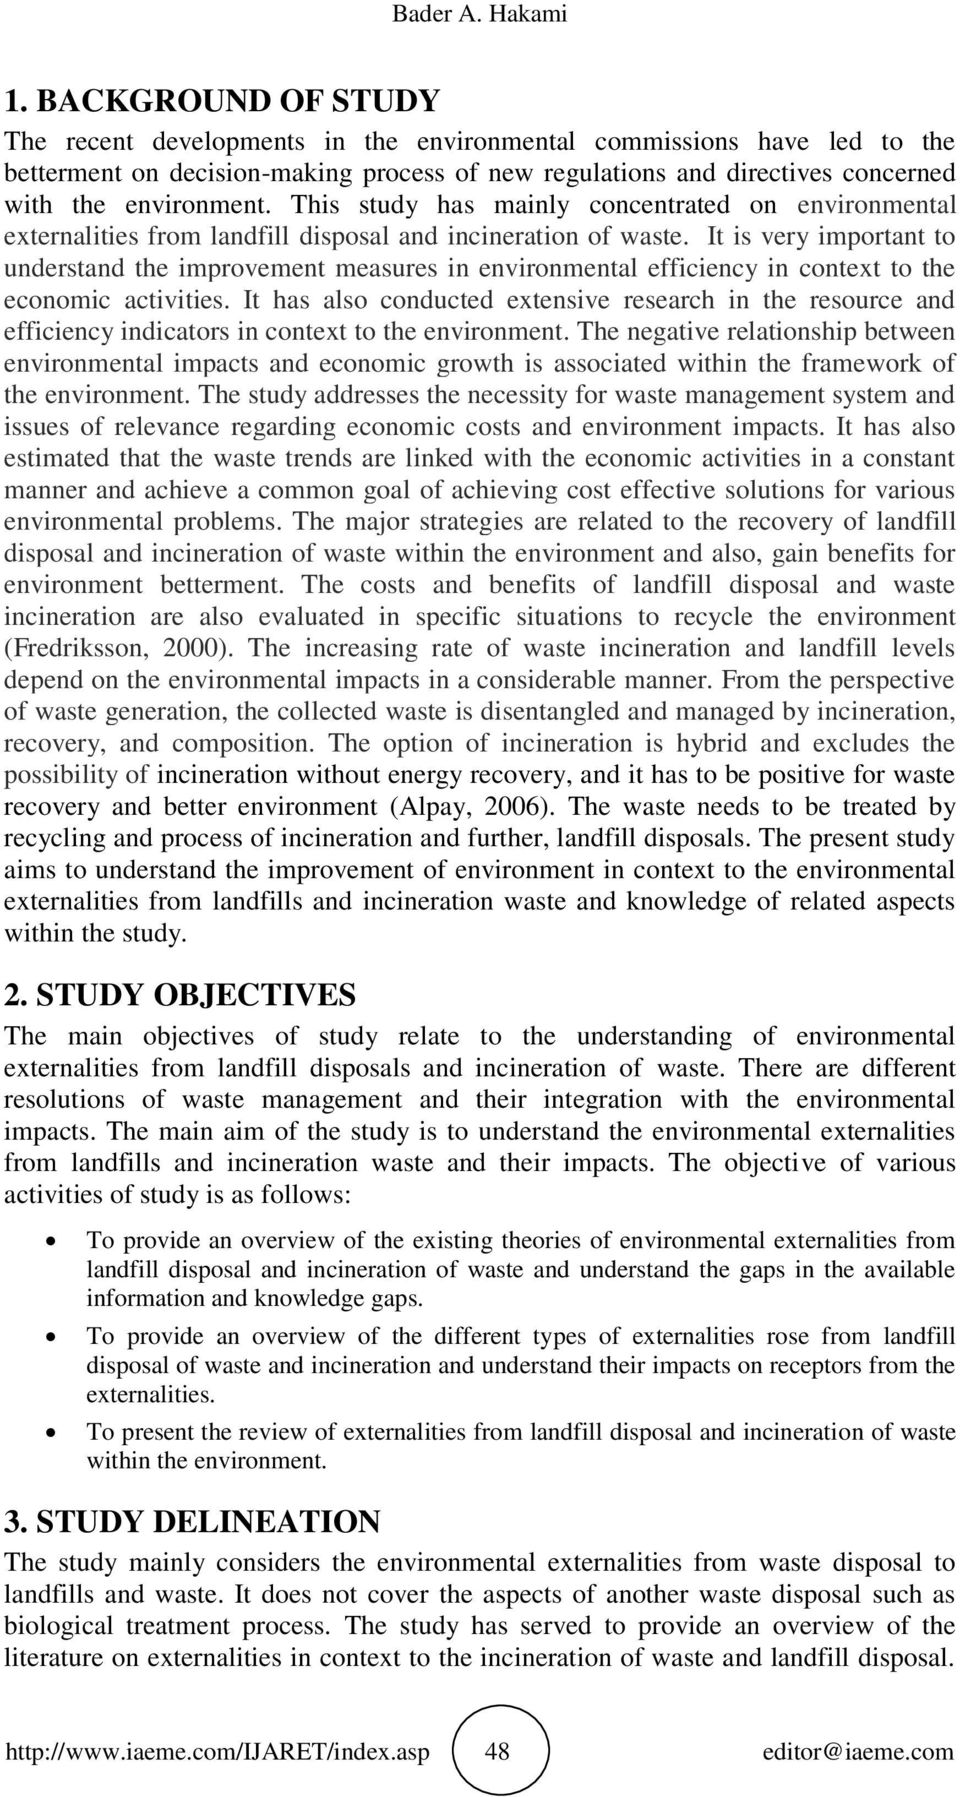 This study has mainly concentrated on environmental externalities from landfill disposal and incineration of waste.